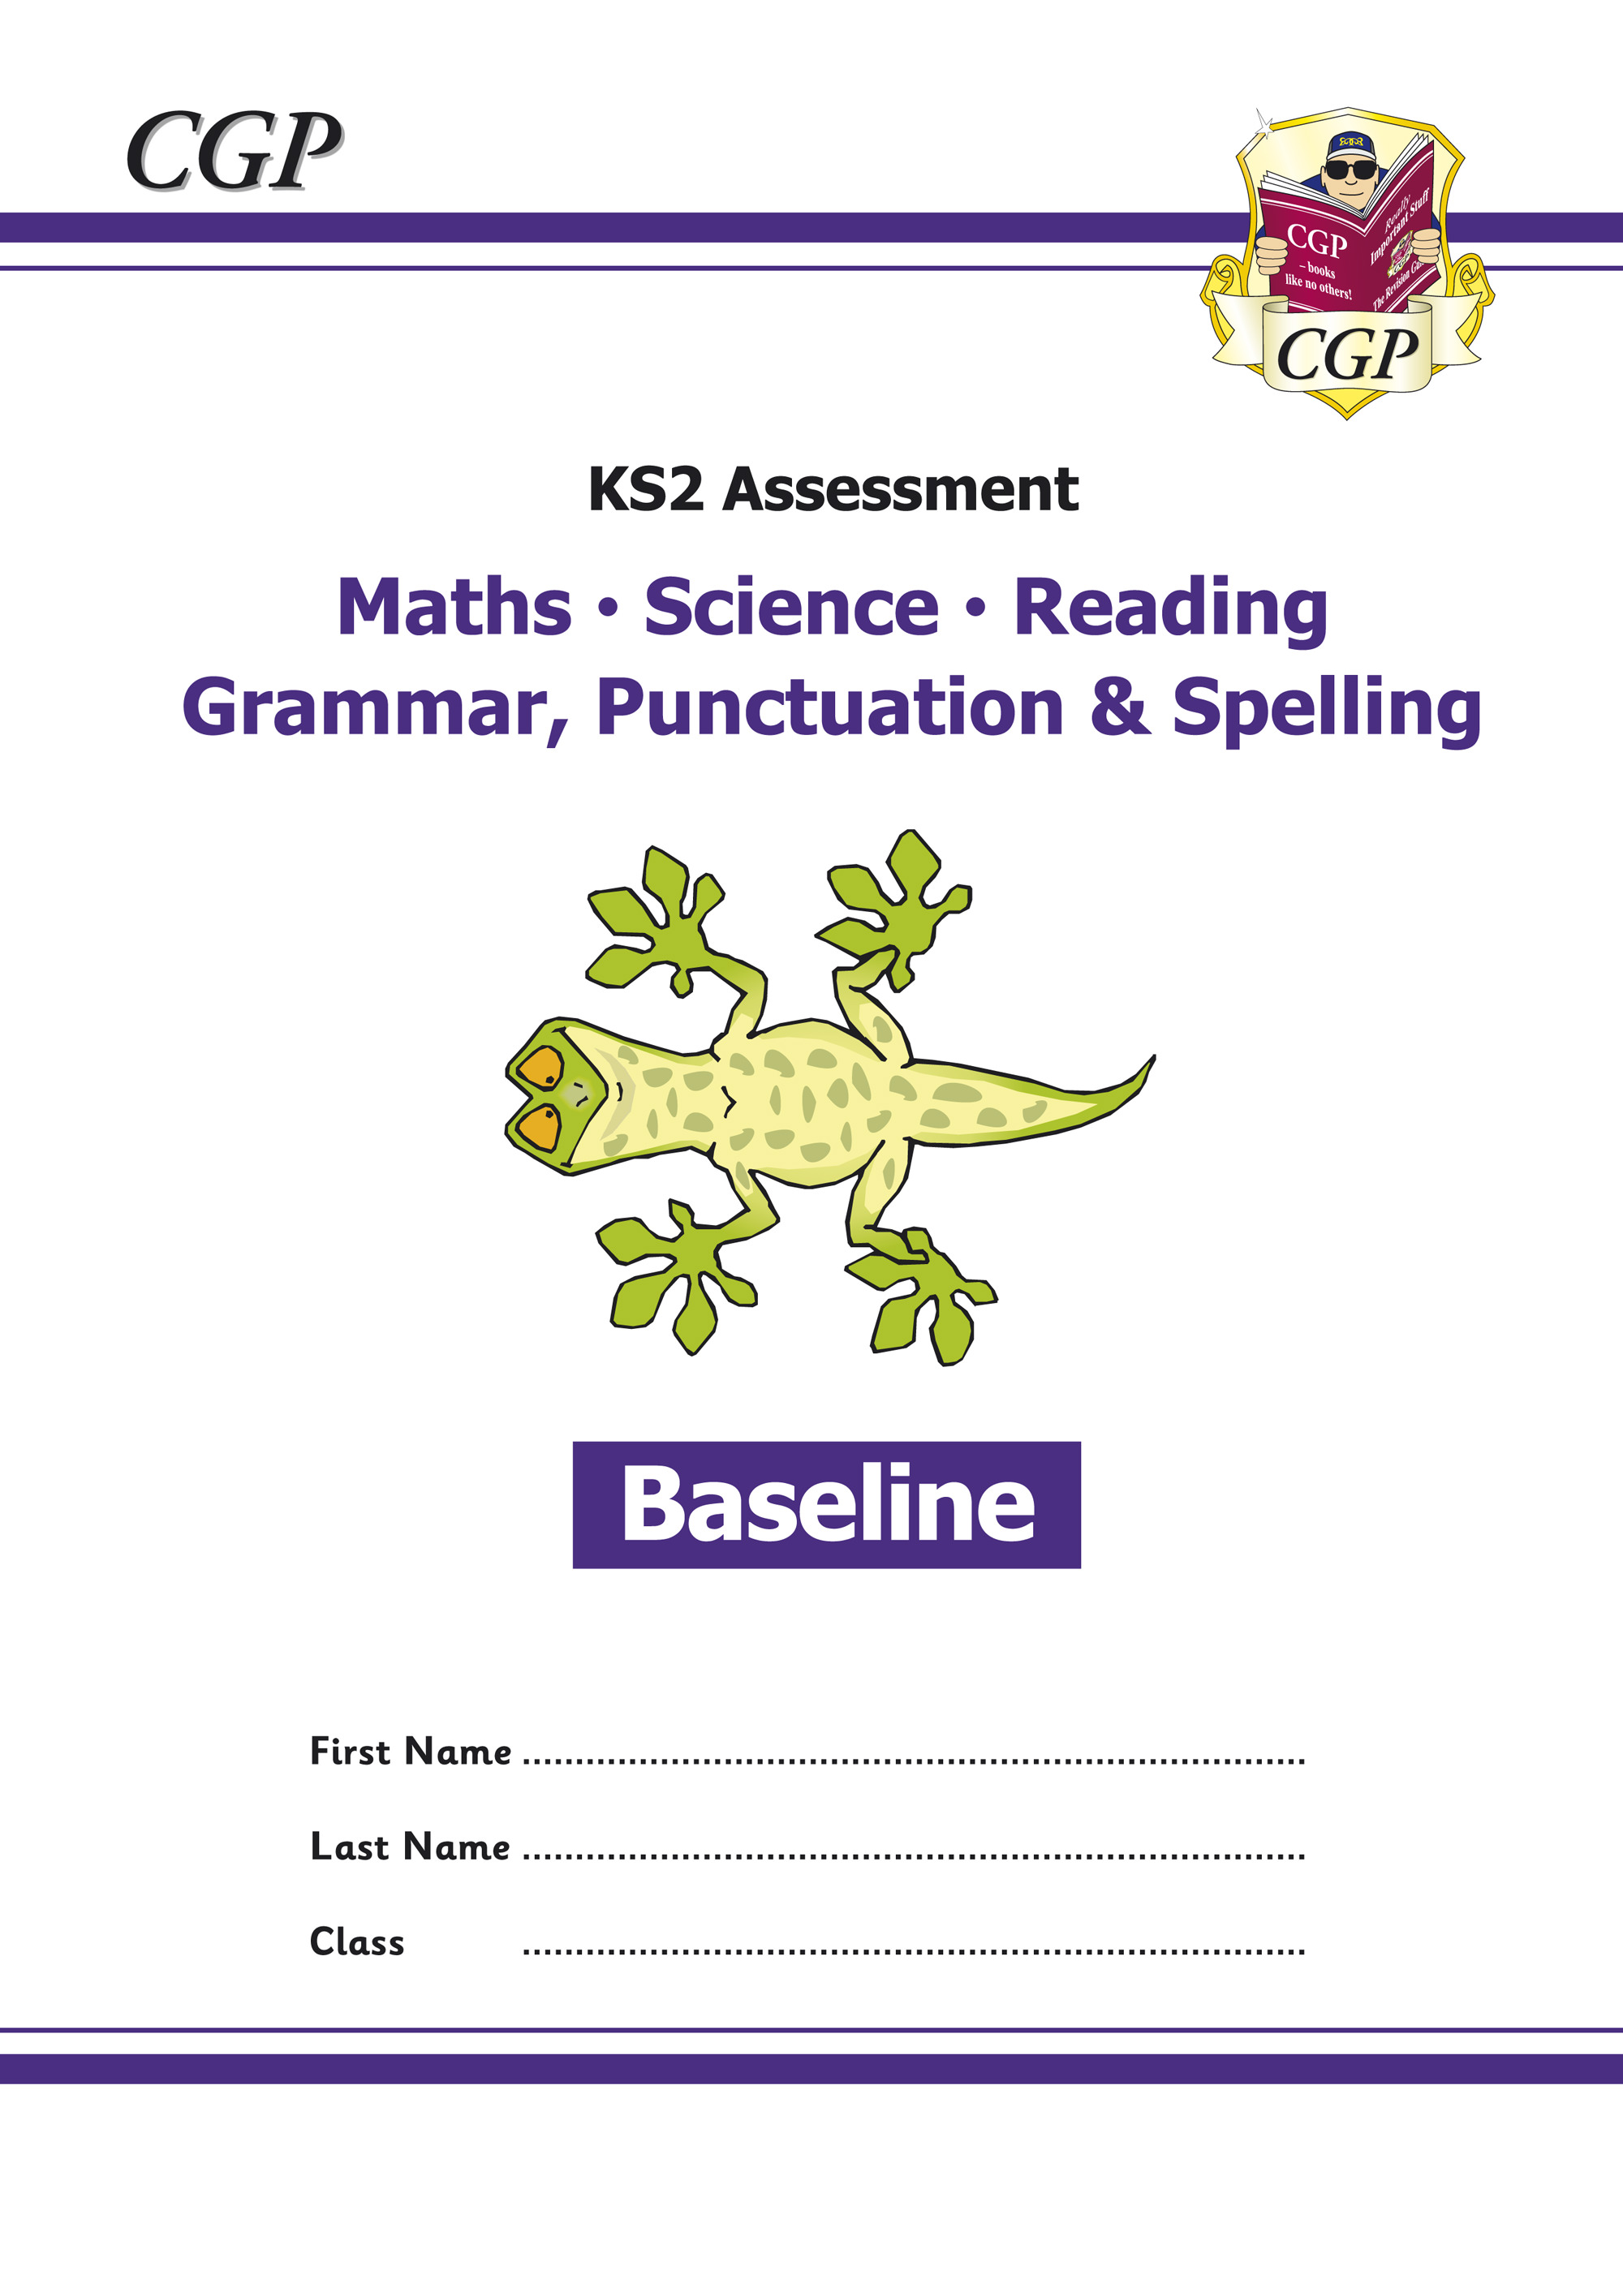 EMSBP21 - KS2 Assessment: Reading, SPaG, Maths and Science - Baseline Tests